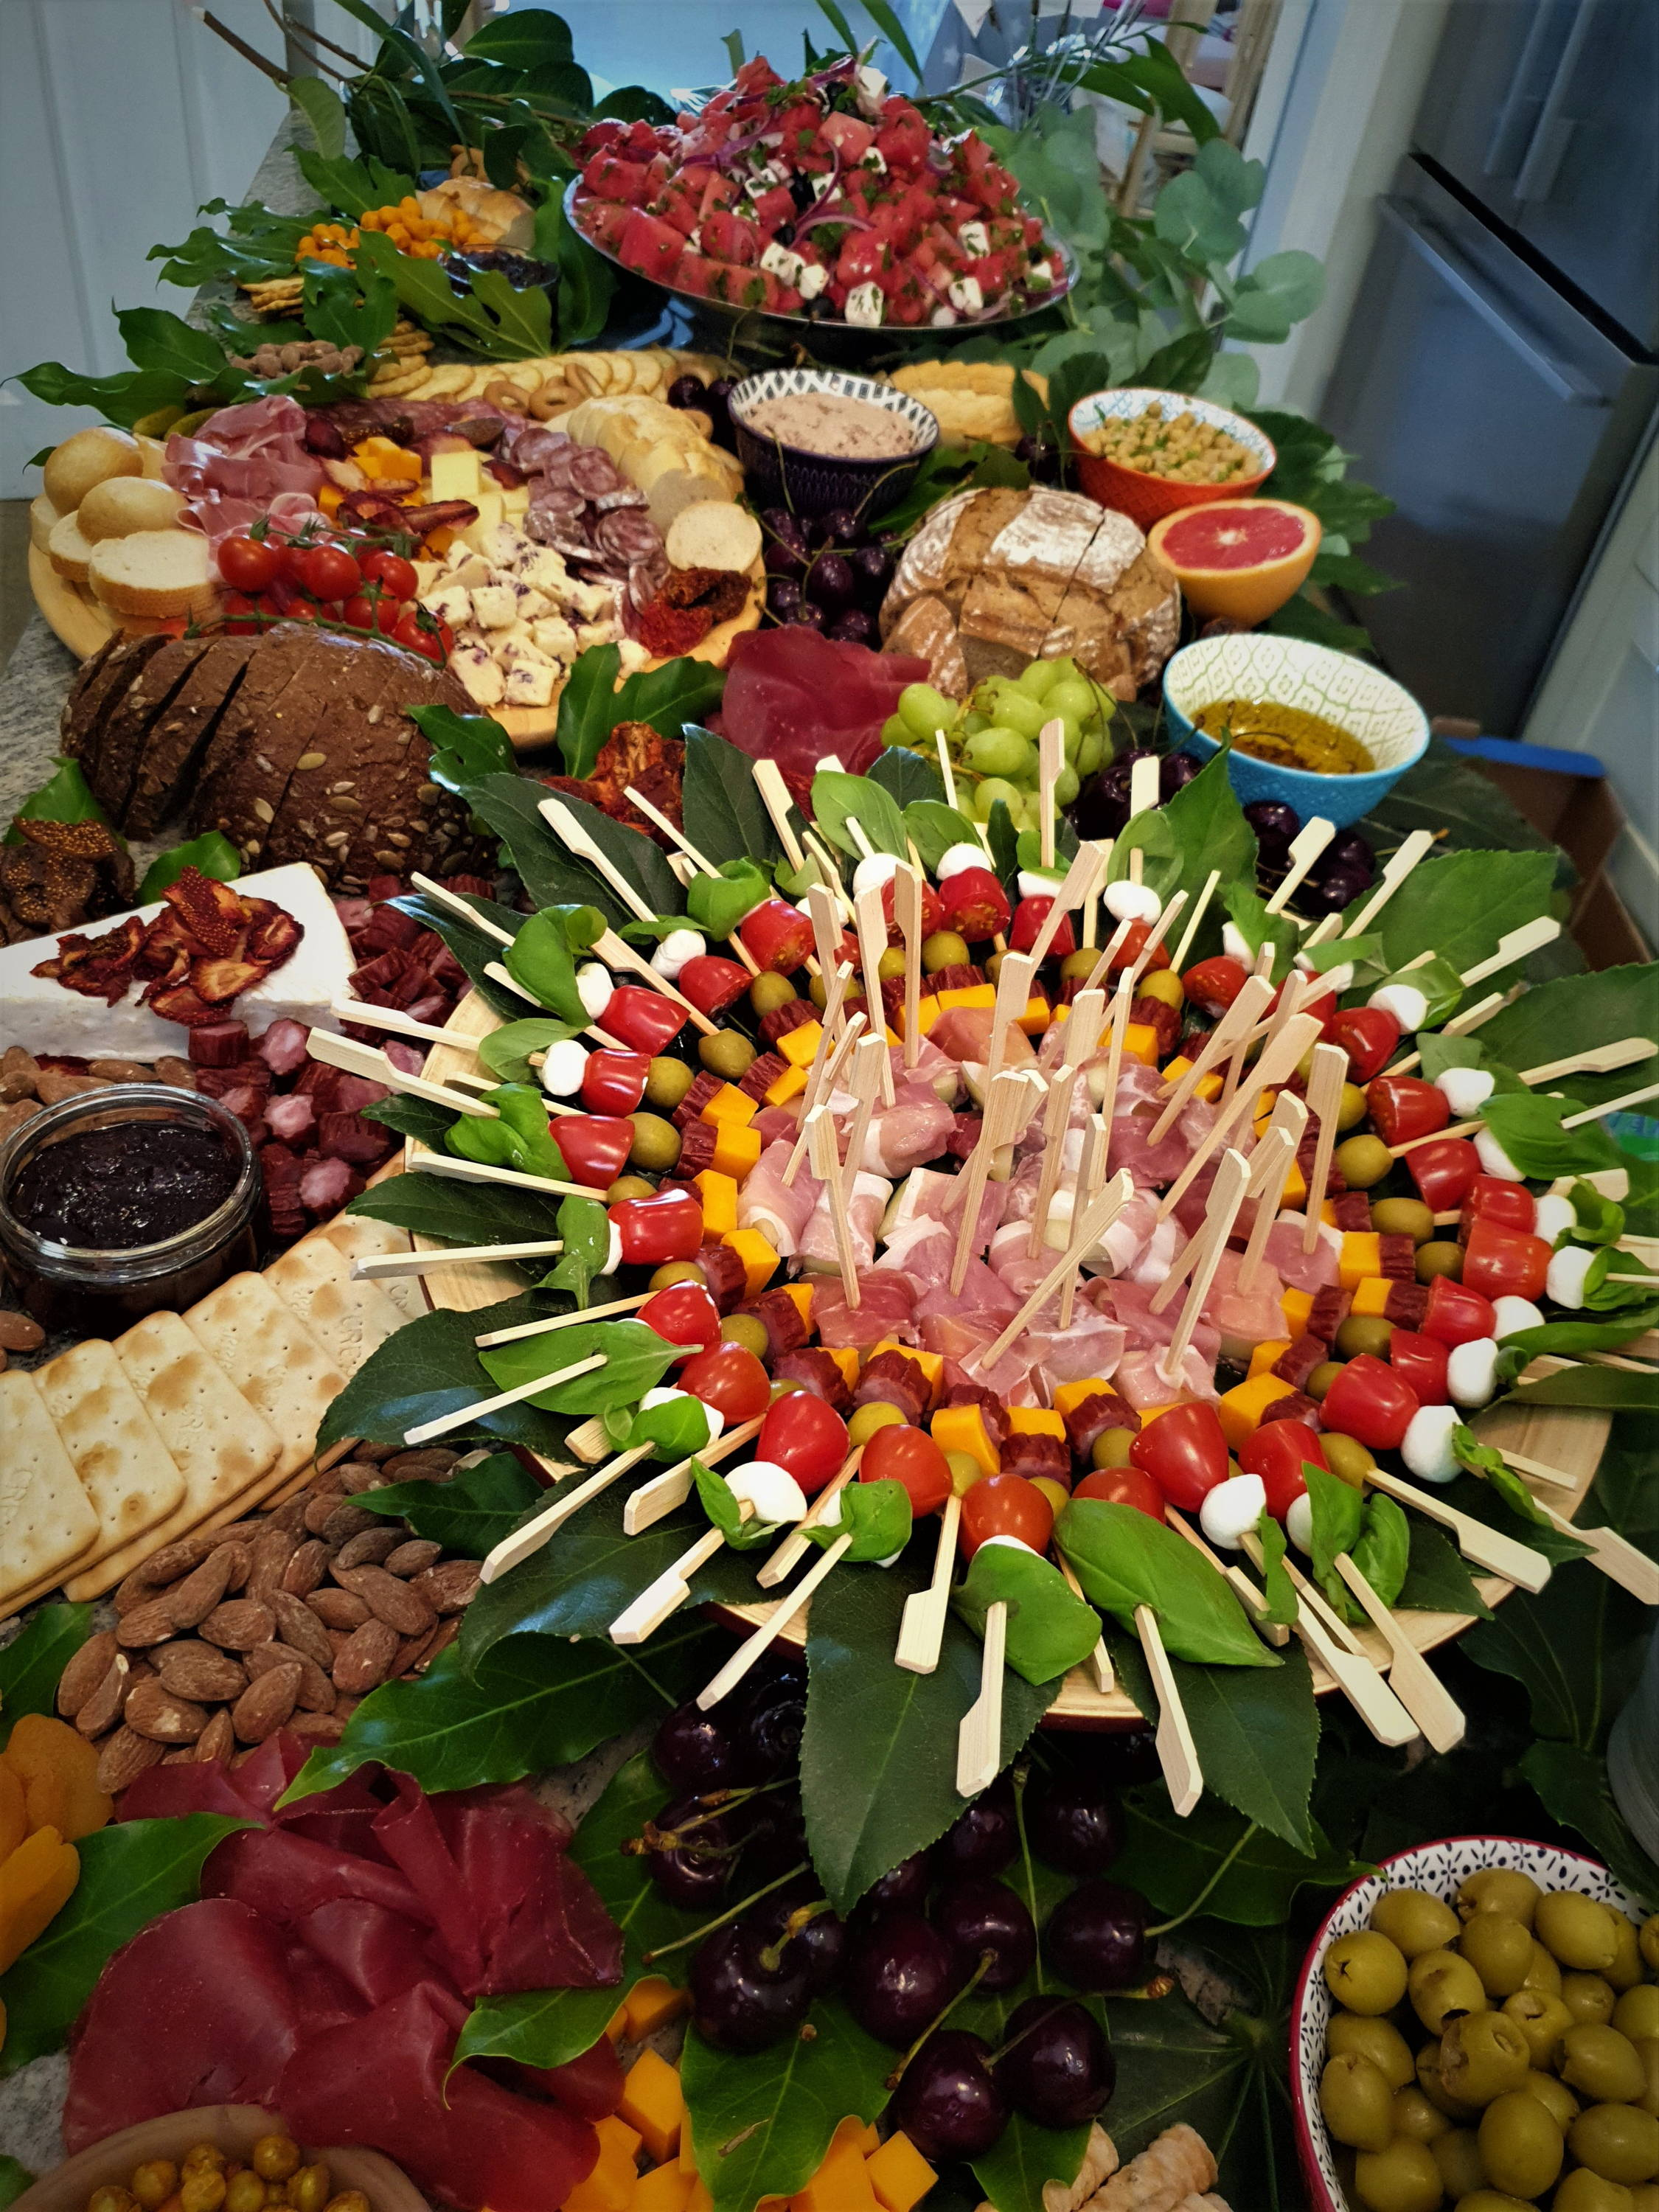 Grazing table with layers of cured meats, cheeses, fruit and vegetable. Offered by Kidbay Parties, London Loves Catering.